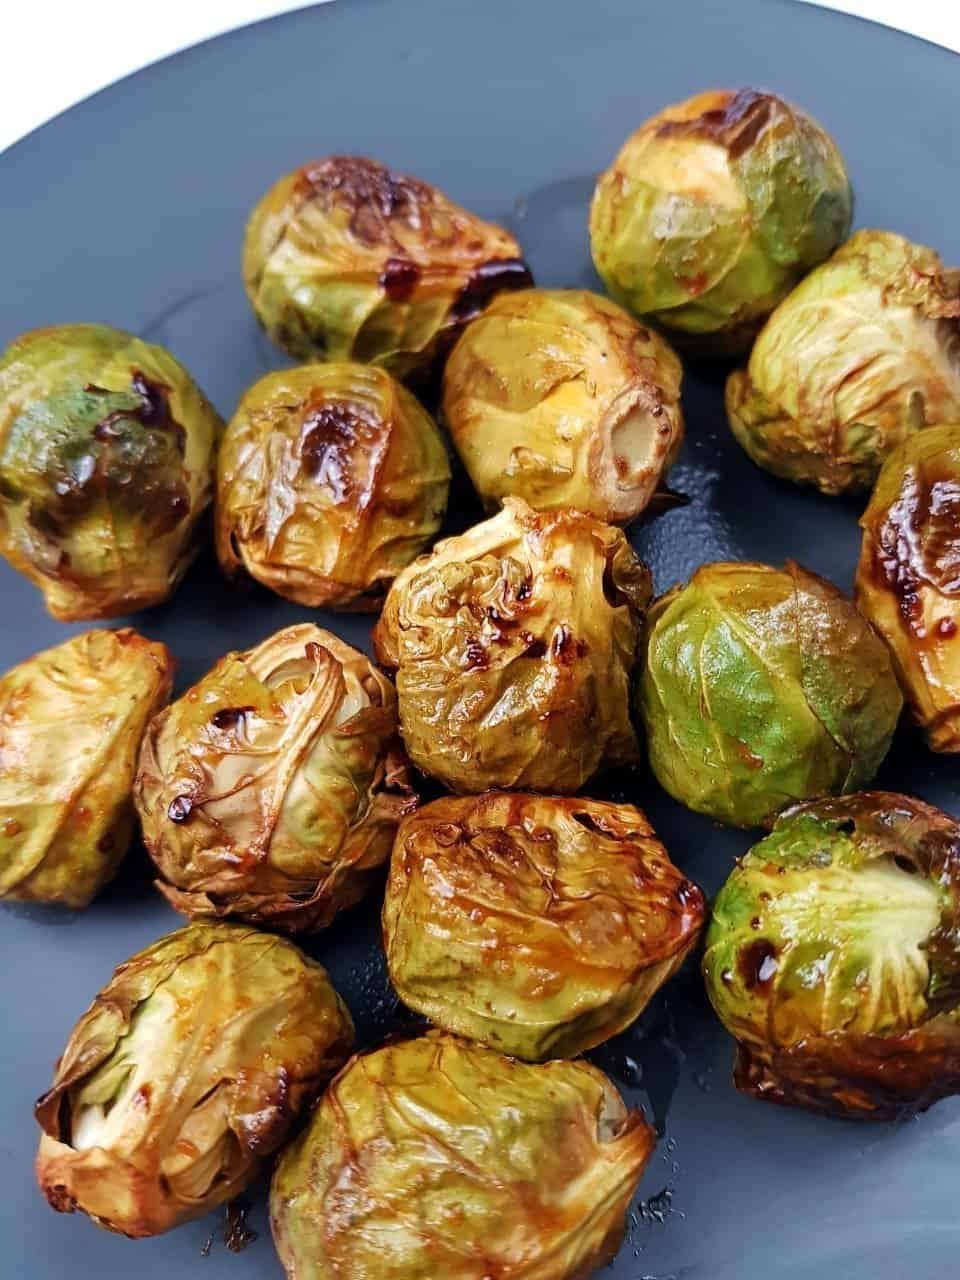 Oven roasted honey and sriracha brussels sprouts on a grey plate.